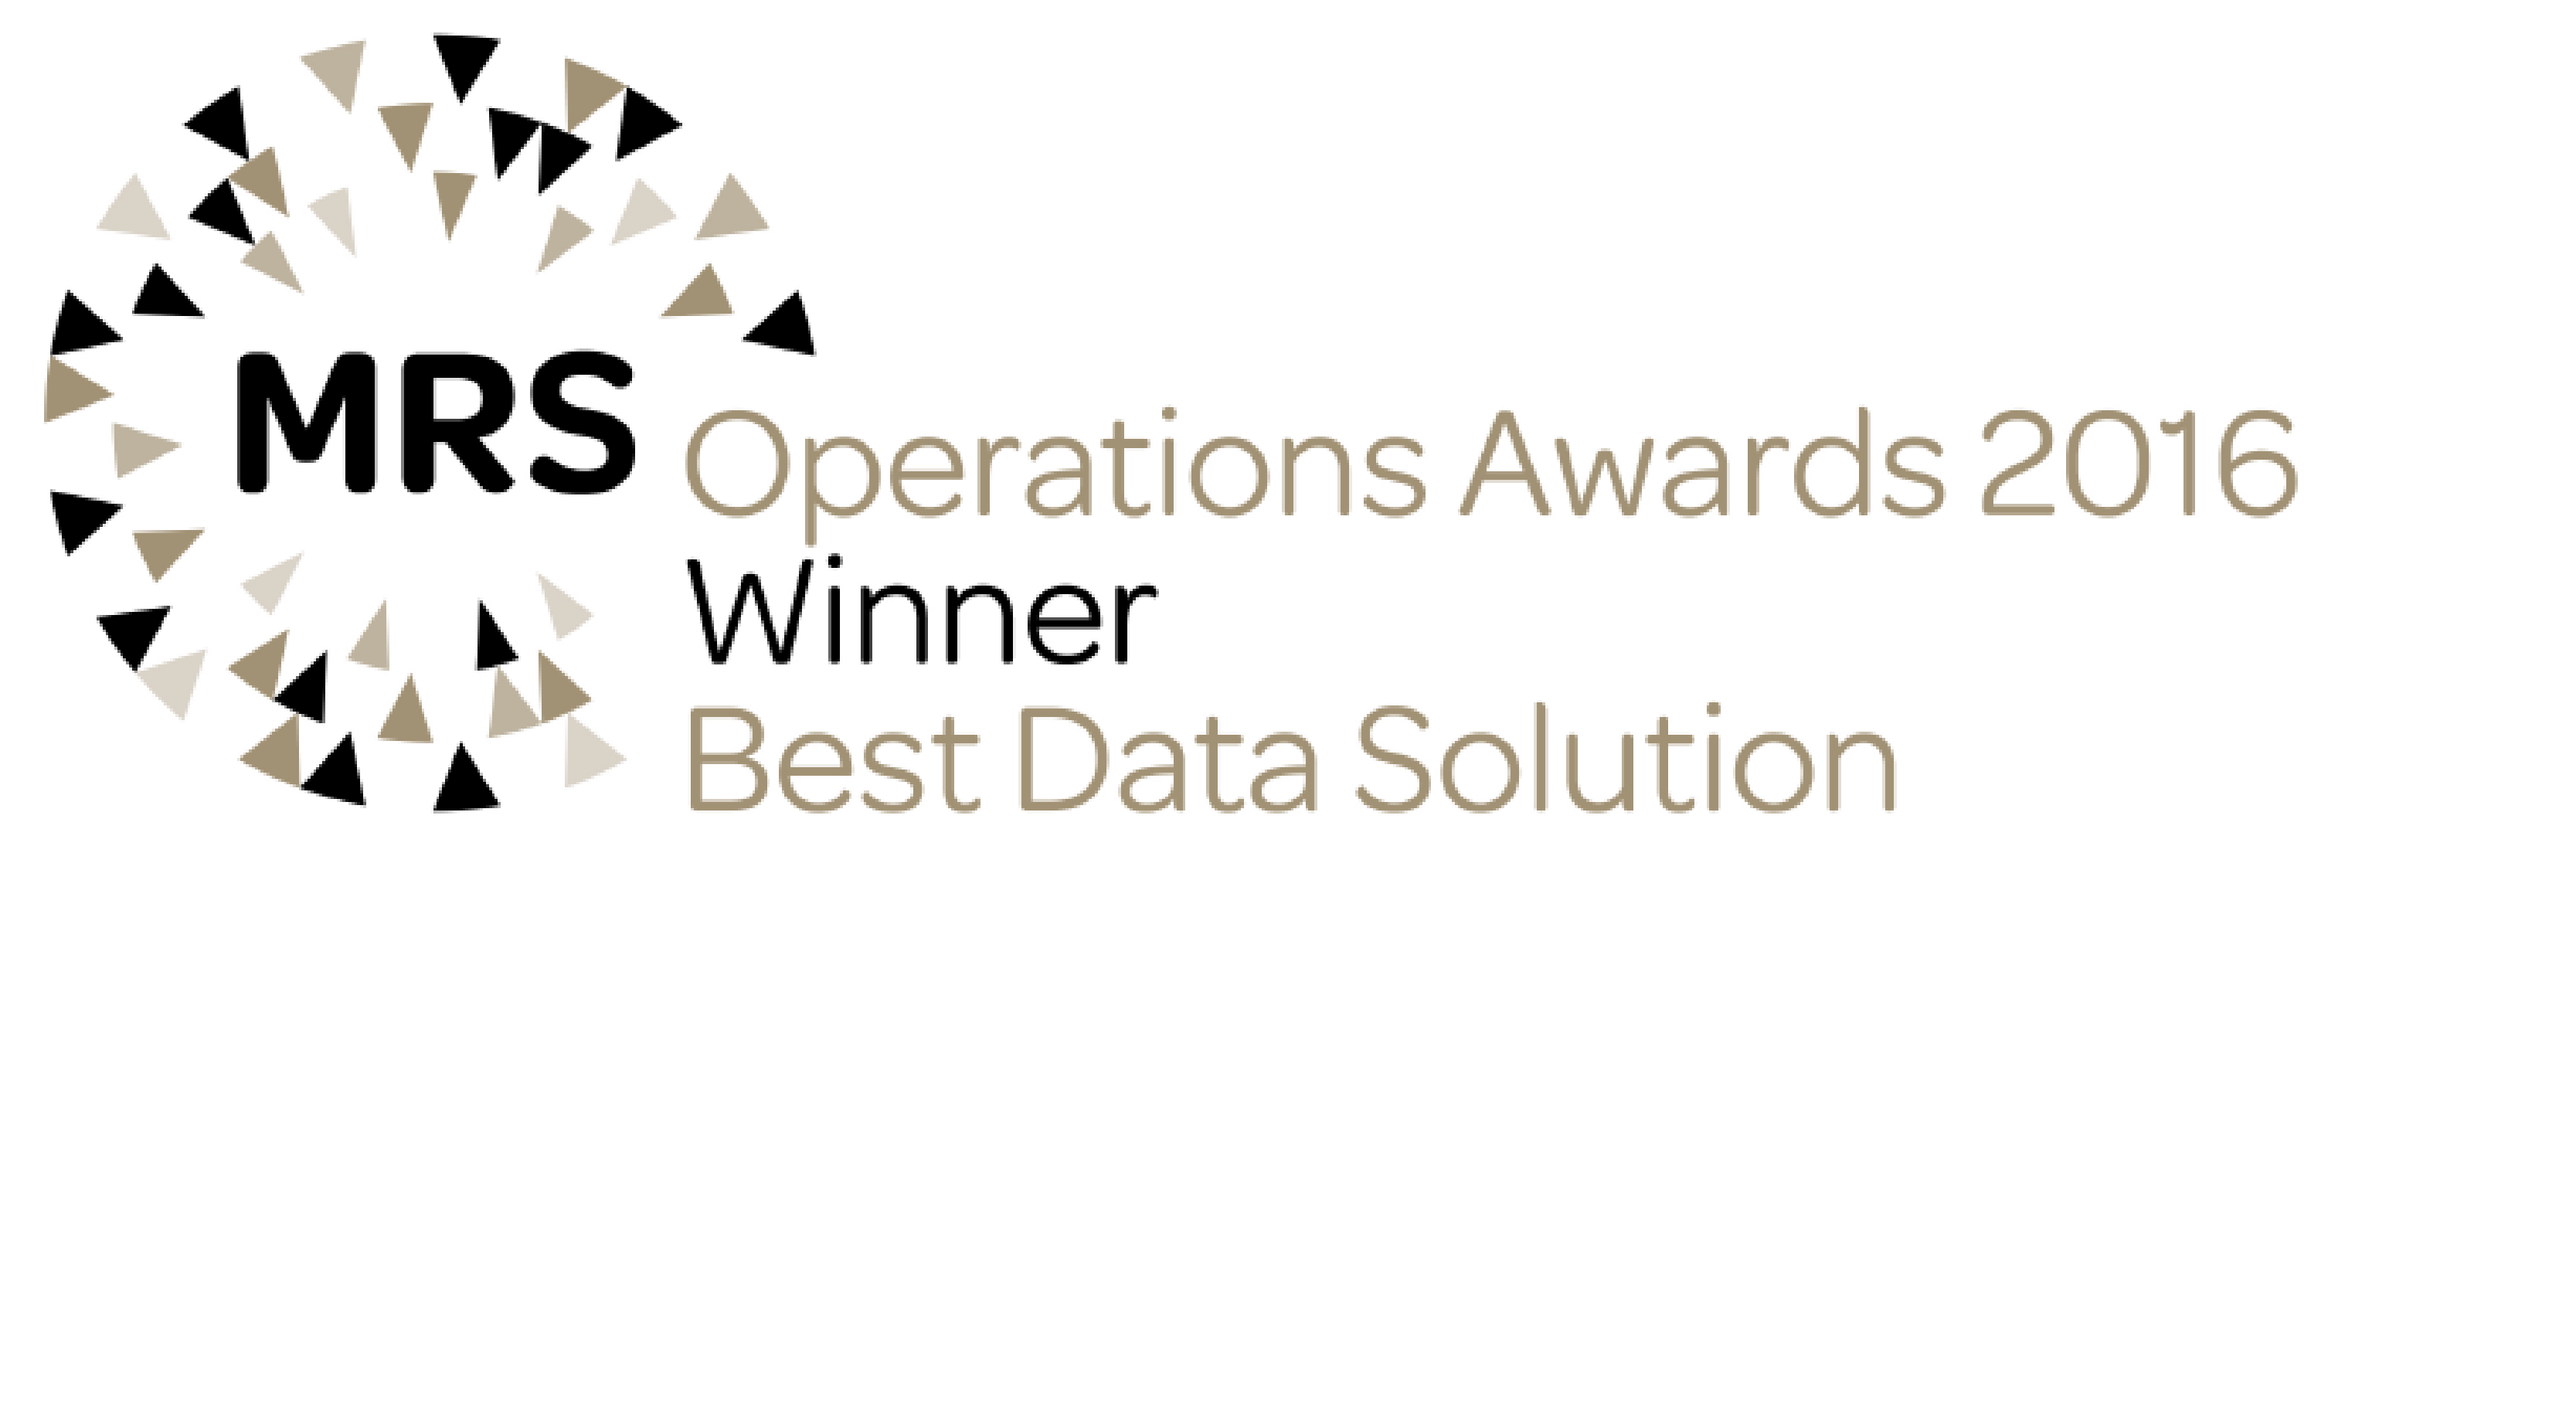 400px_Best Data Solution, 2016